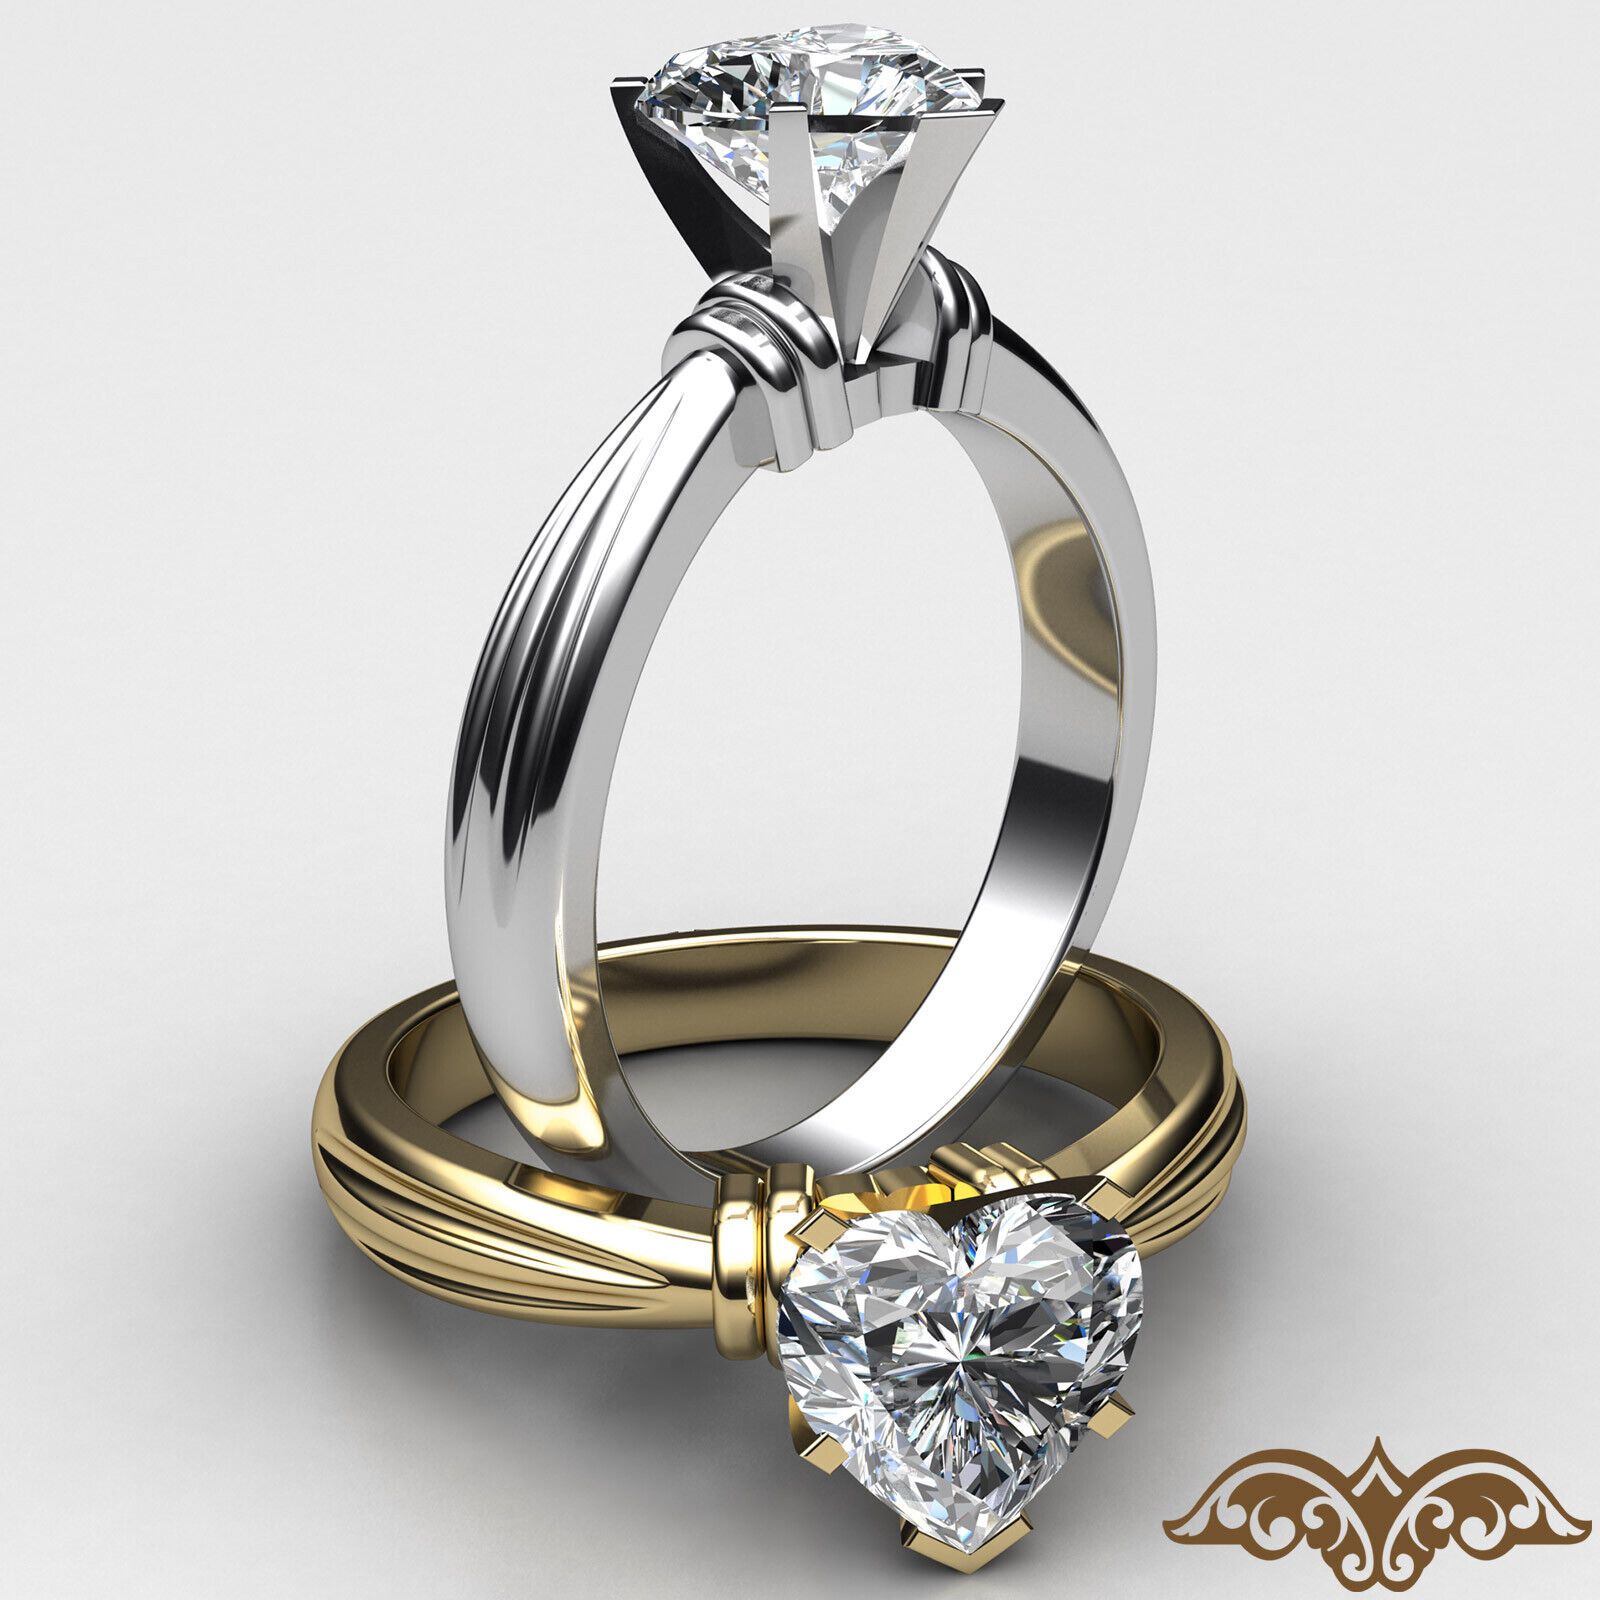 Ridged Solitaire Heart Diamond Engagement GIA, G SI1 Gold 2.6mm Ring 0.70 ct.